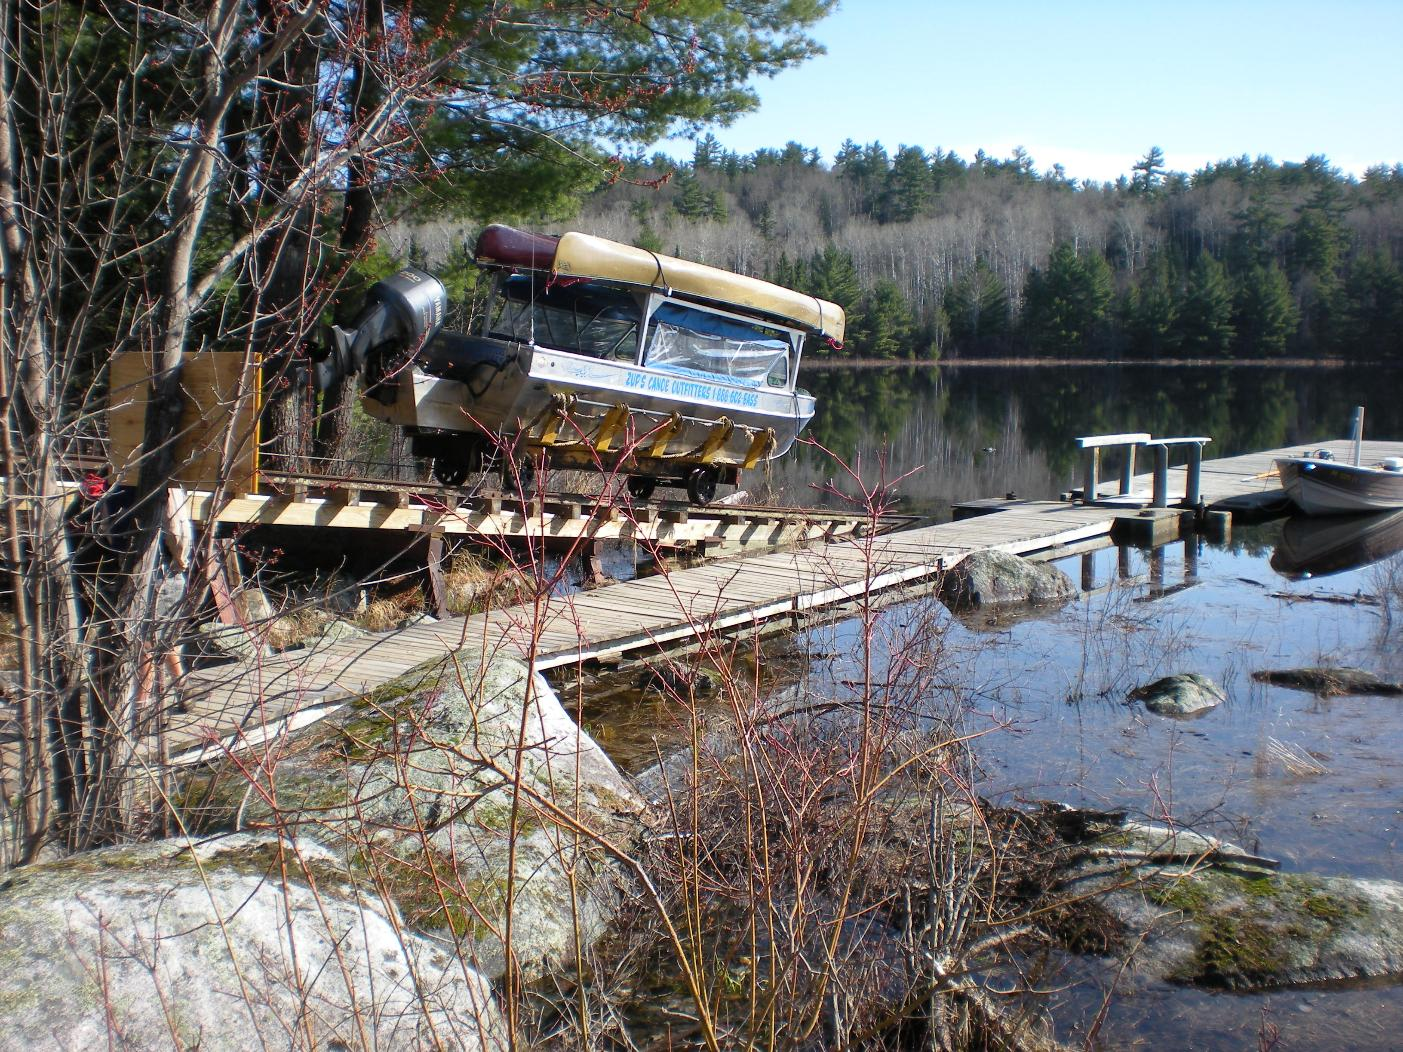 Mechanical Portage on the Loon River